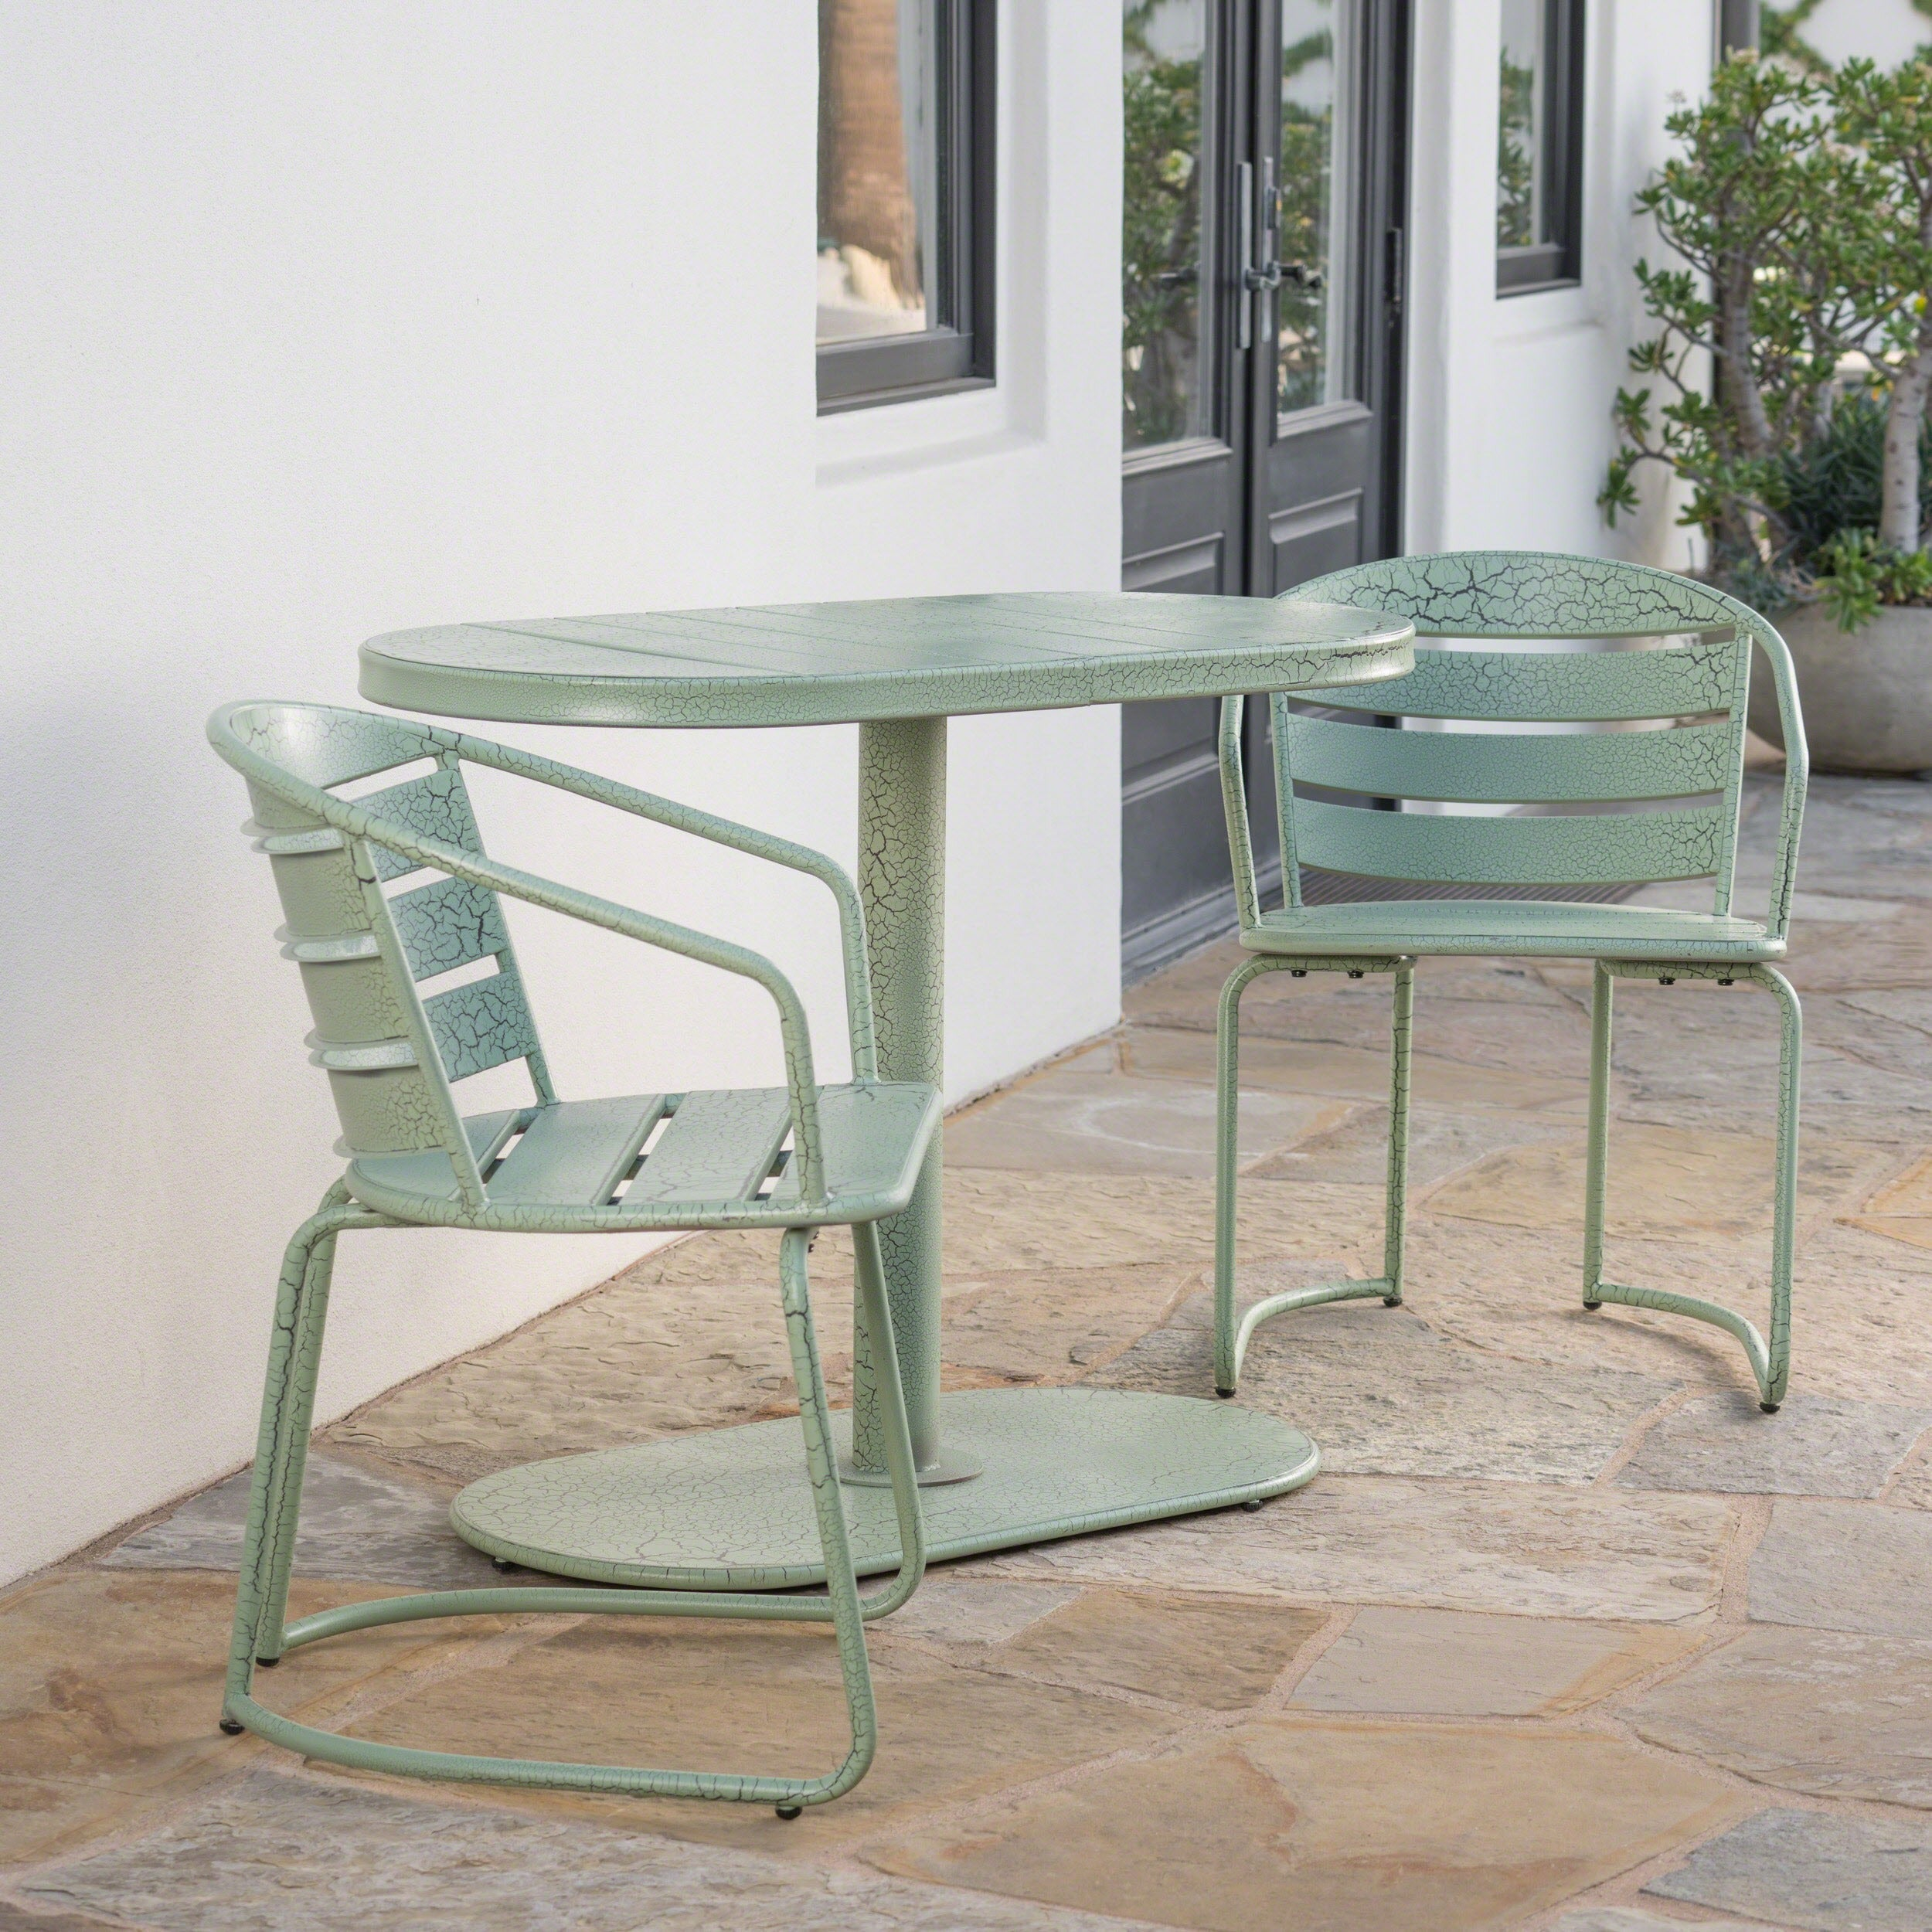 Shop santa monica outdoor 3 piece oval bistro chat set by christopher knight home on sale free shipping today overstock 19502001